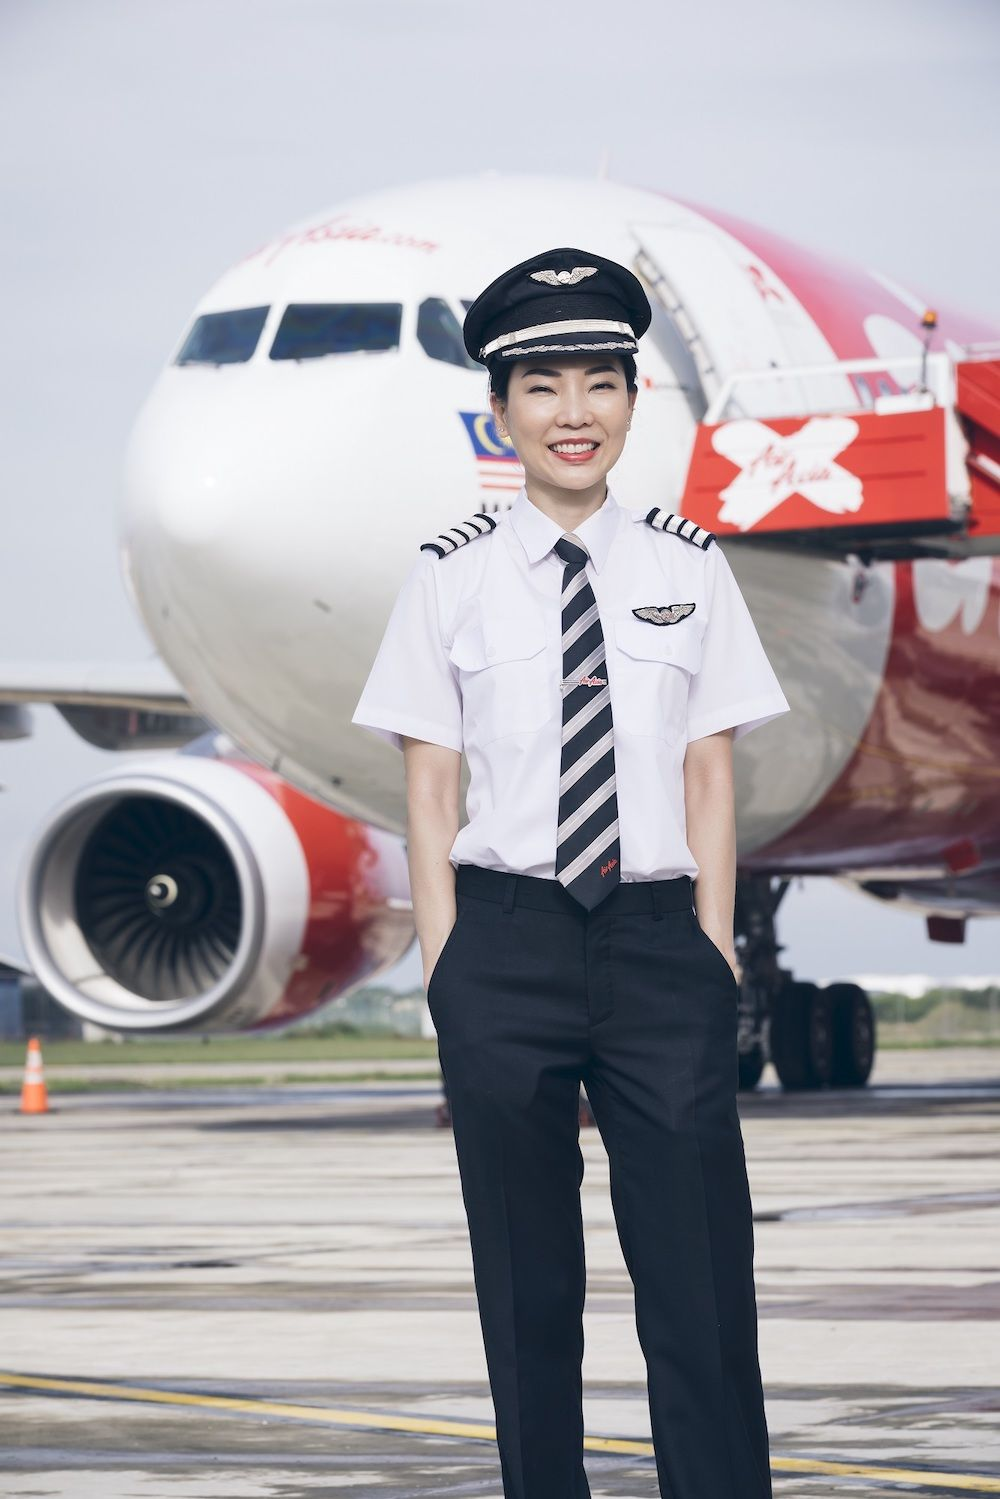 Suwapich Wongwiriyawanich is one of AirAsia's first female pilots (photo: Courtesy AirAsia)